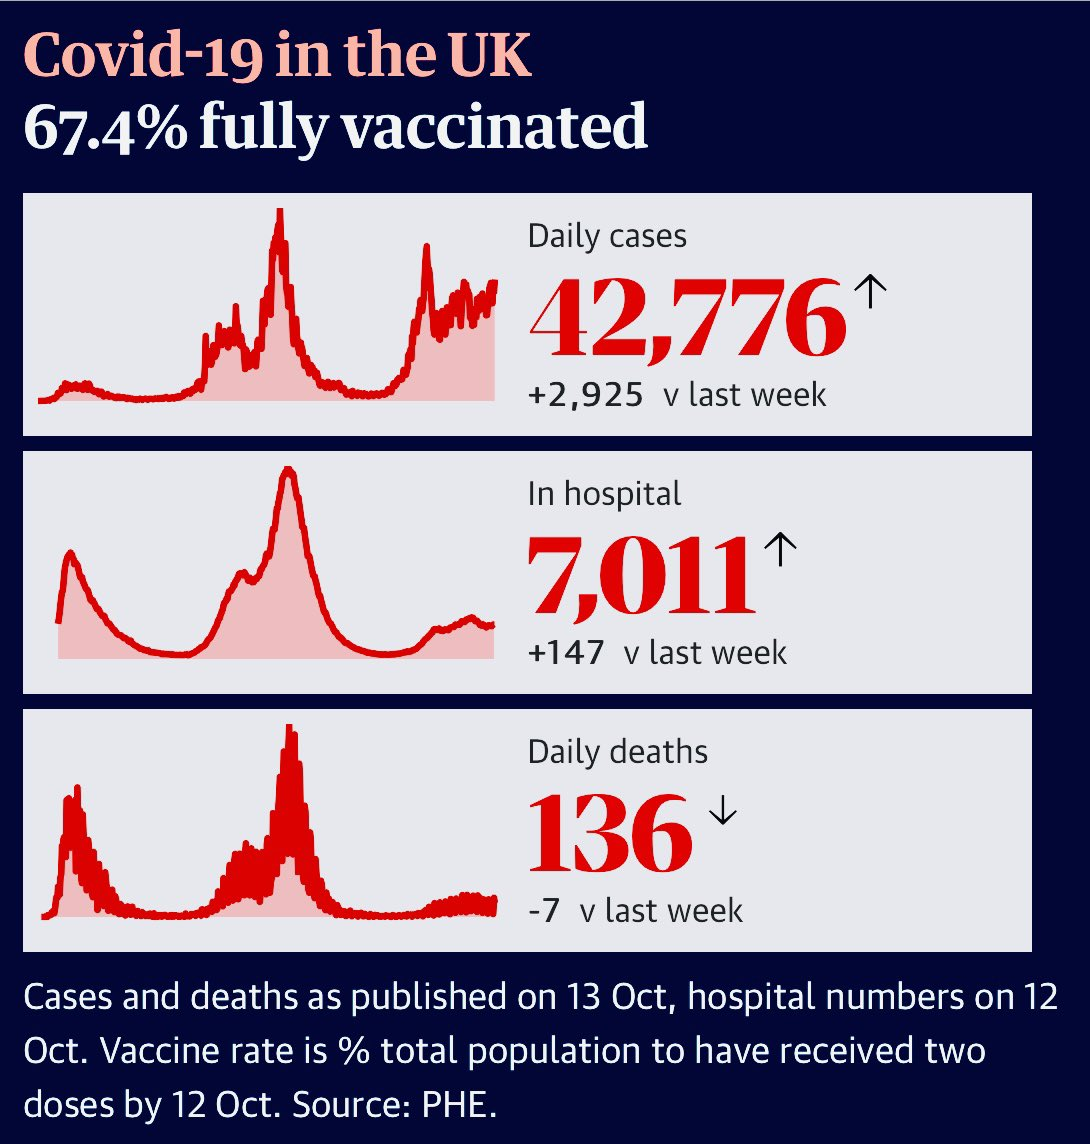 Over 40k new Covid cases today and 7000 hospitalisations. In no sense is this pandemic over, no matter how fiercely we yearn for normality. Please mask up and please have your jab 🙏